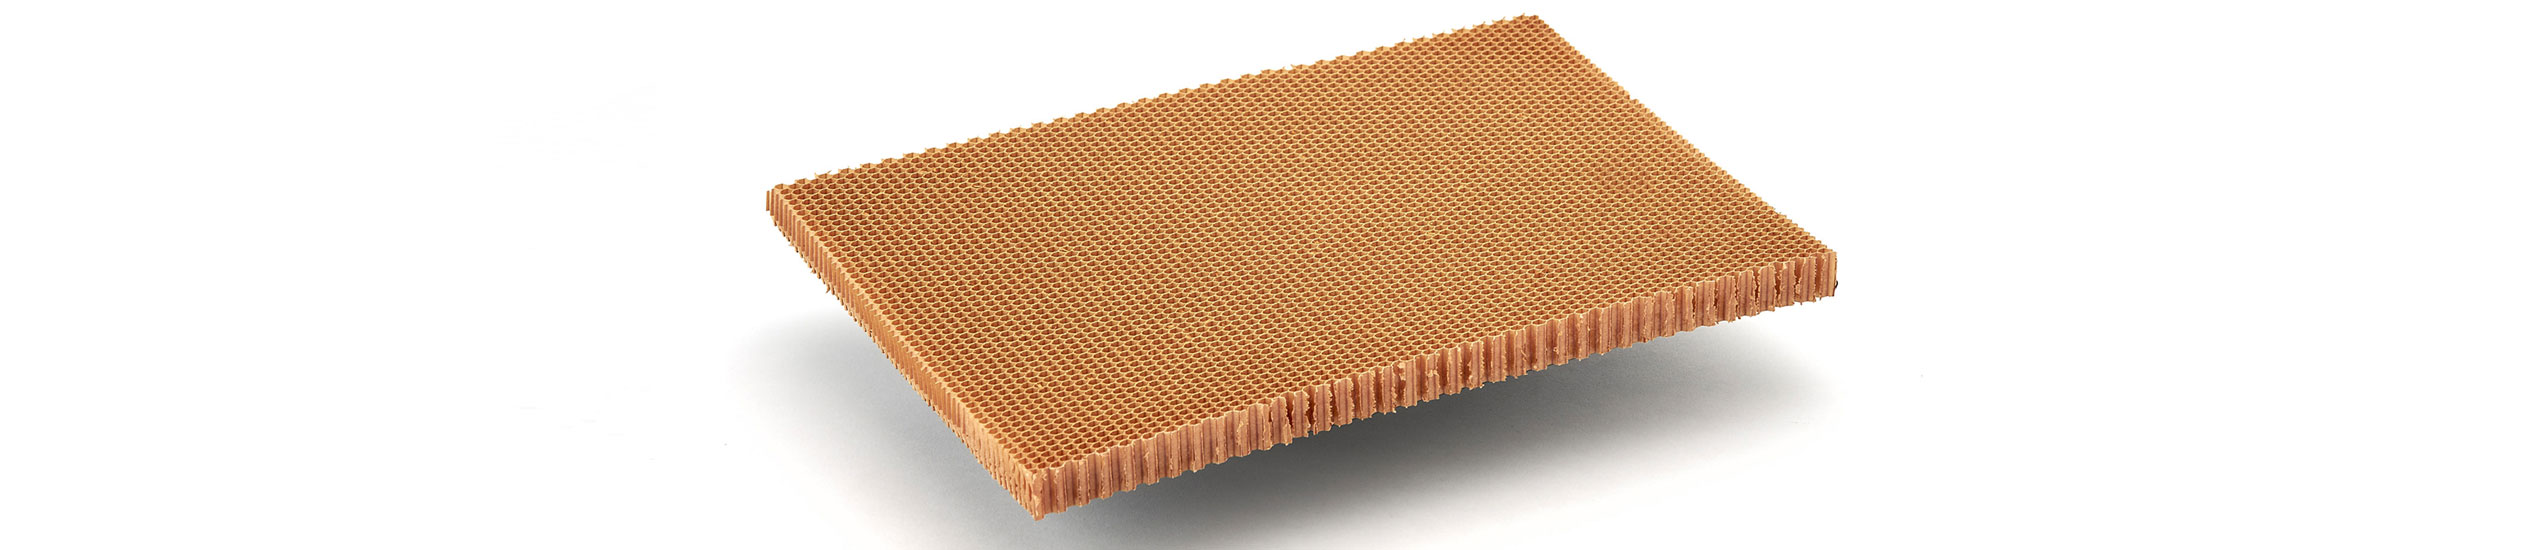 Nomex® honeycomb is an extremely lightweight,high strength,non metallic product manufactured with aramid fiber paper impregnated with a heat resistant phenolic